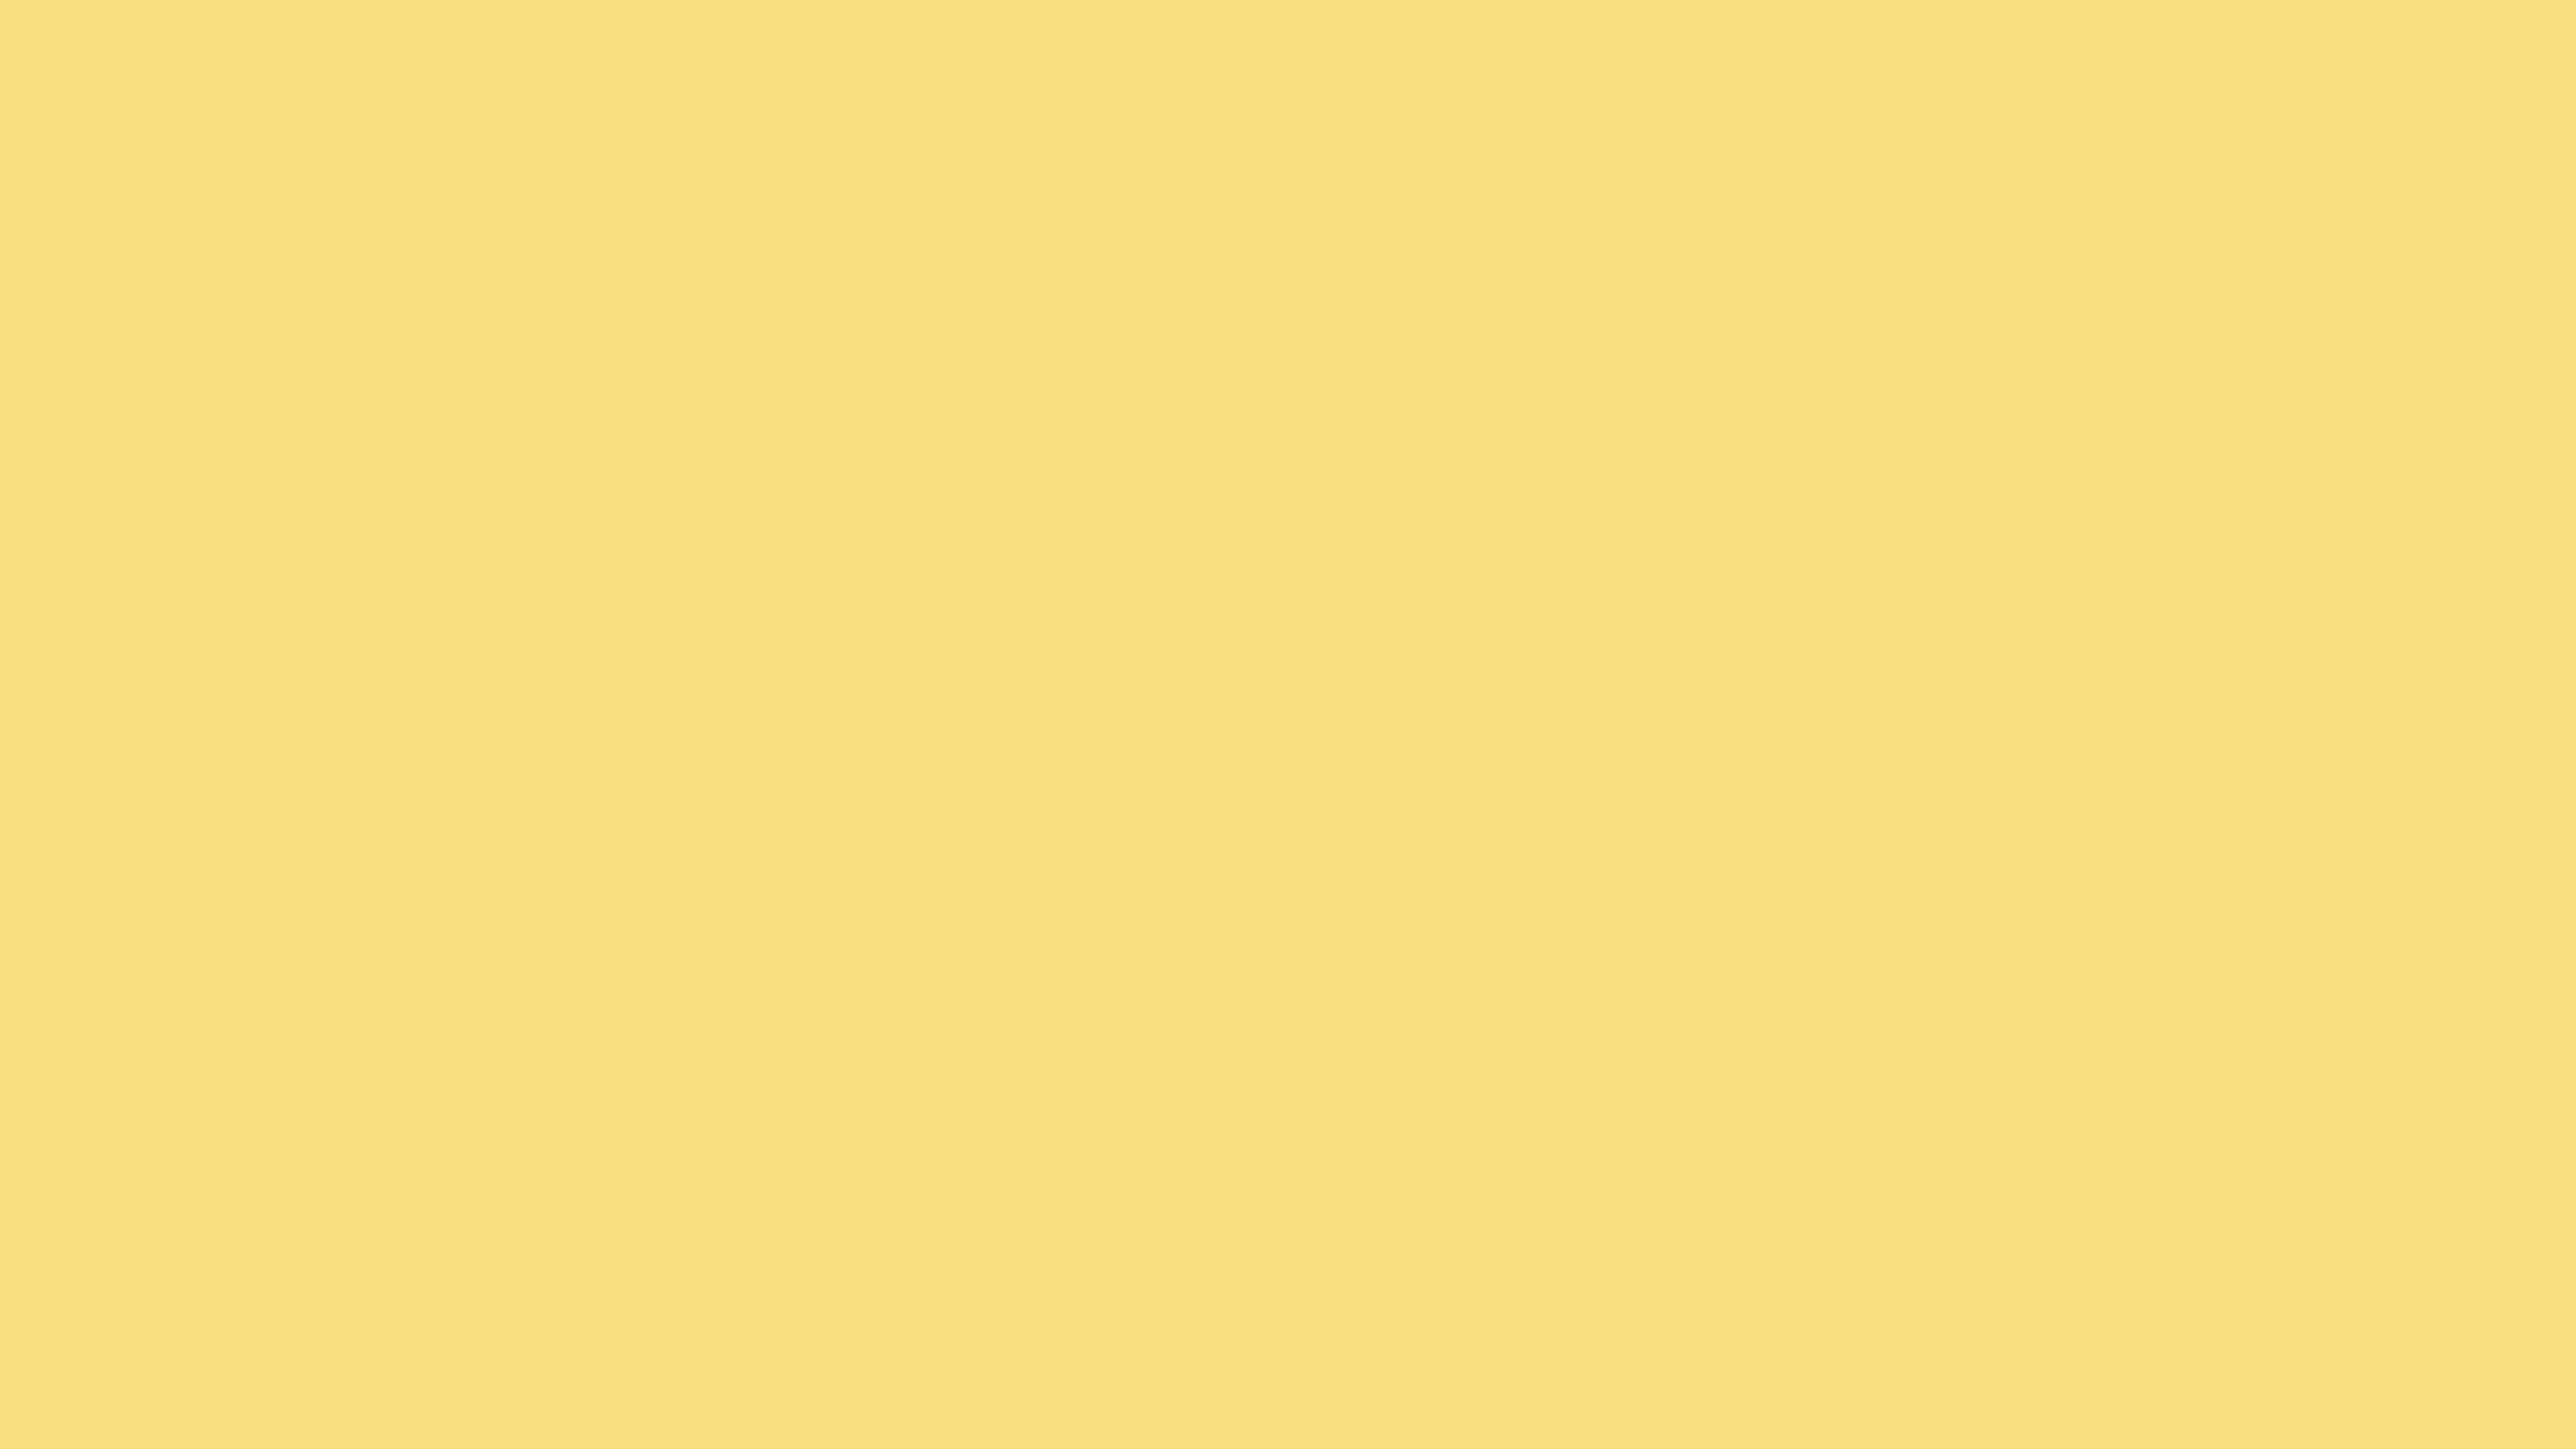 4096x2304 Mellow Yellow Solid Color Background